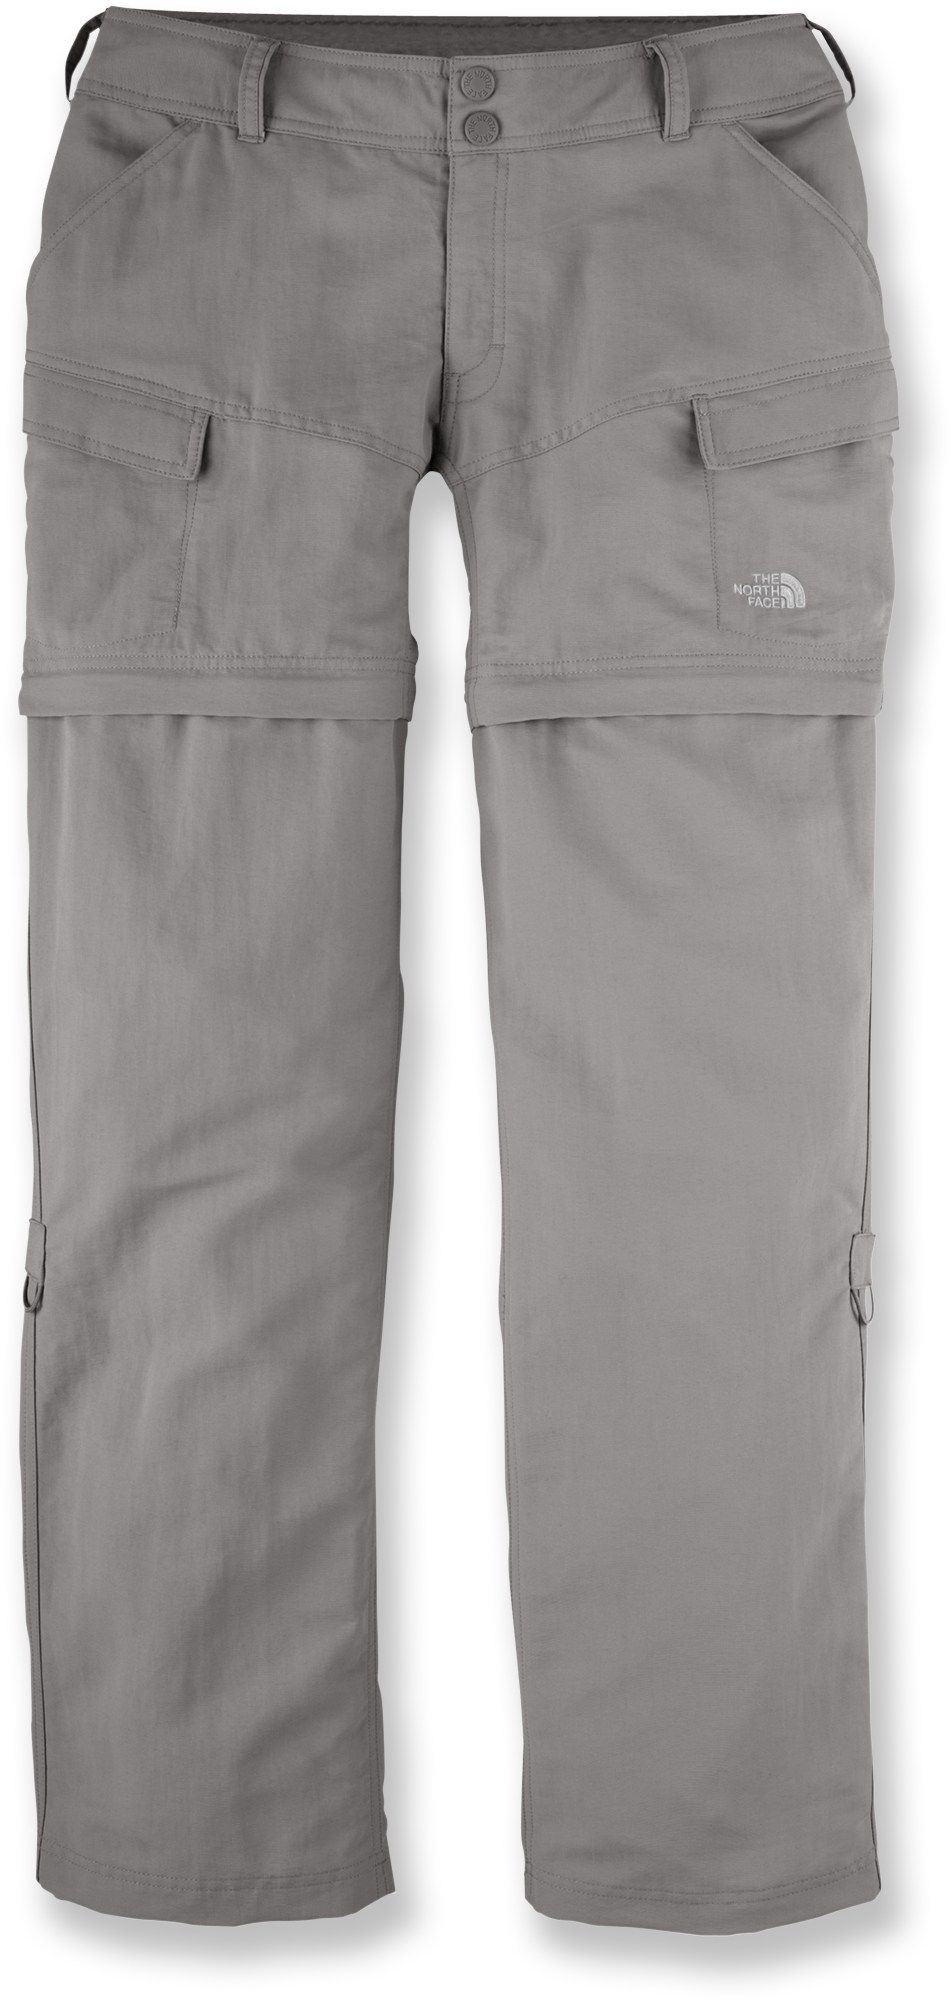 3a701a2b48 The North Face Paramount Valley Convertible Pants- Women's Petite $44.93